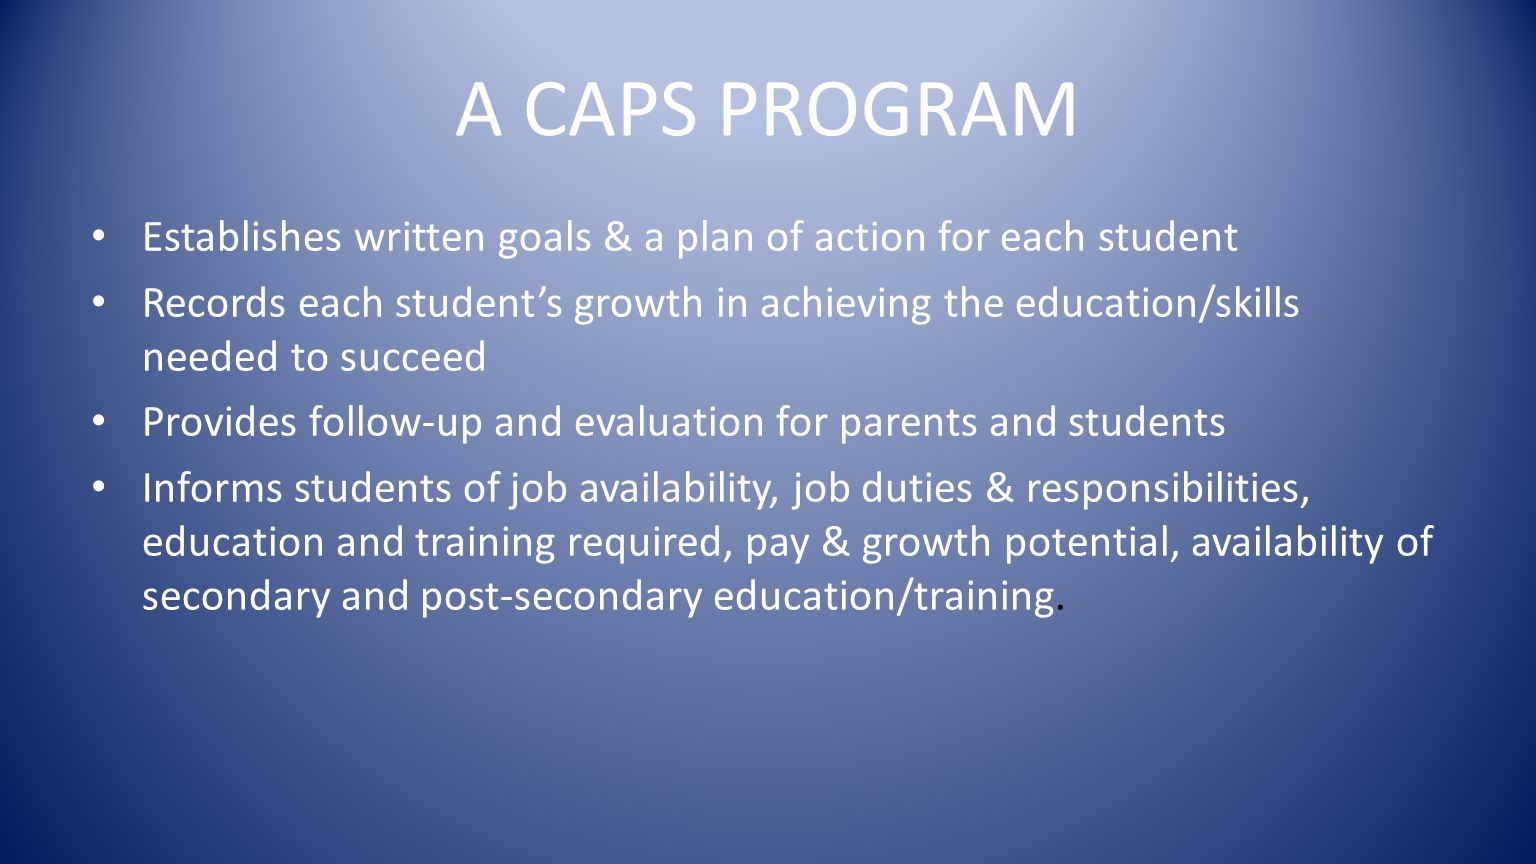 A CAPS PROGRAM Establishes written goals & a plan of action for each student Records each student's growth in achieving the education/skills needed to succeed Provides follow-up and evaluation for parents and students Informs students of job availability, job duties & responsibilities, education and training required, pay & growth potential, availability of secondary and post-secondary education/training.